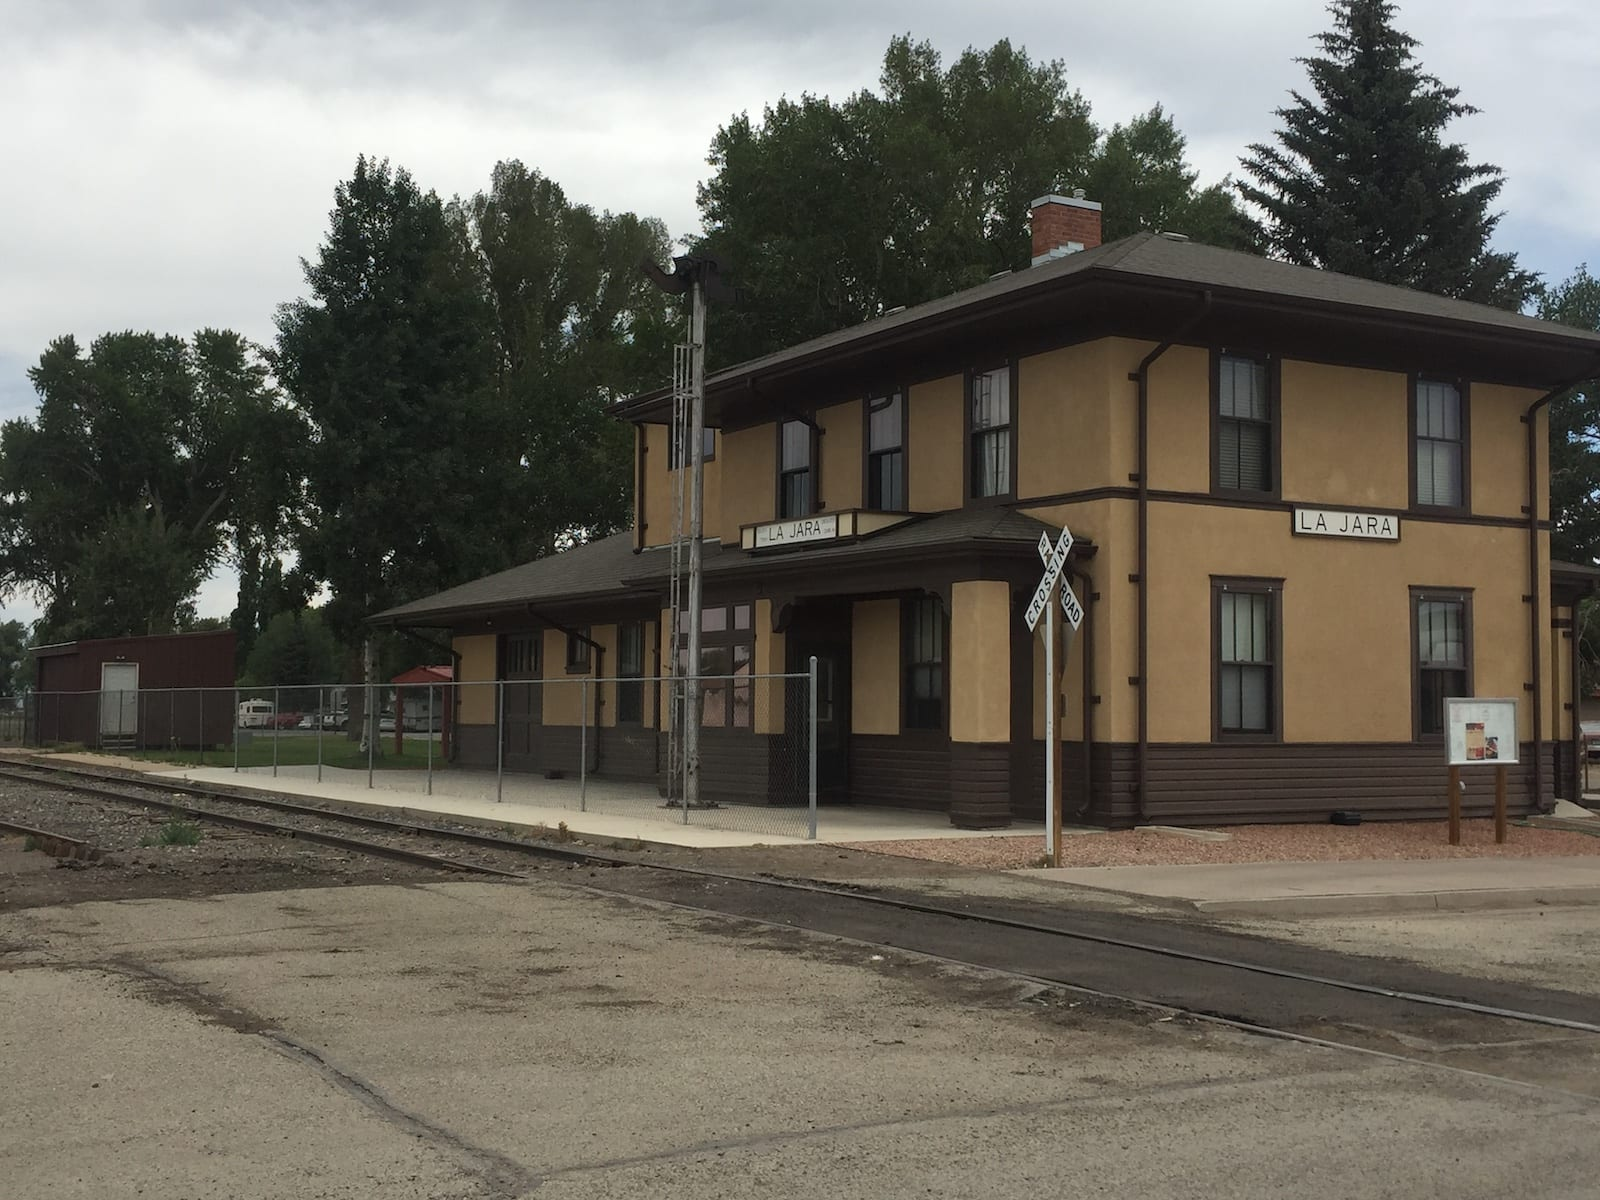 La Jara Colorado Train Depot Railroad Tracks